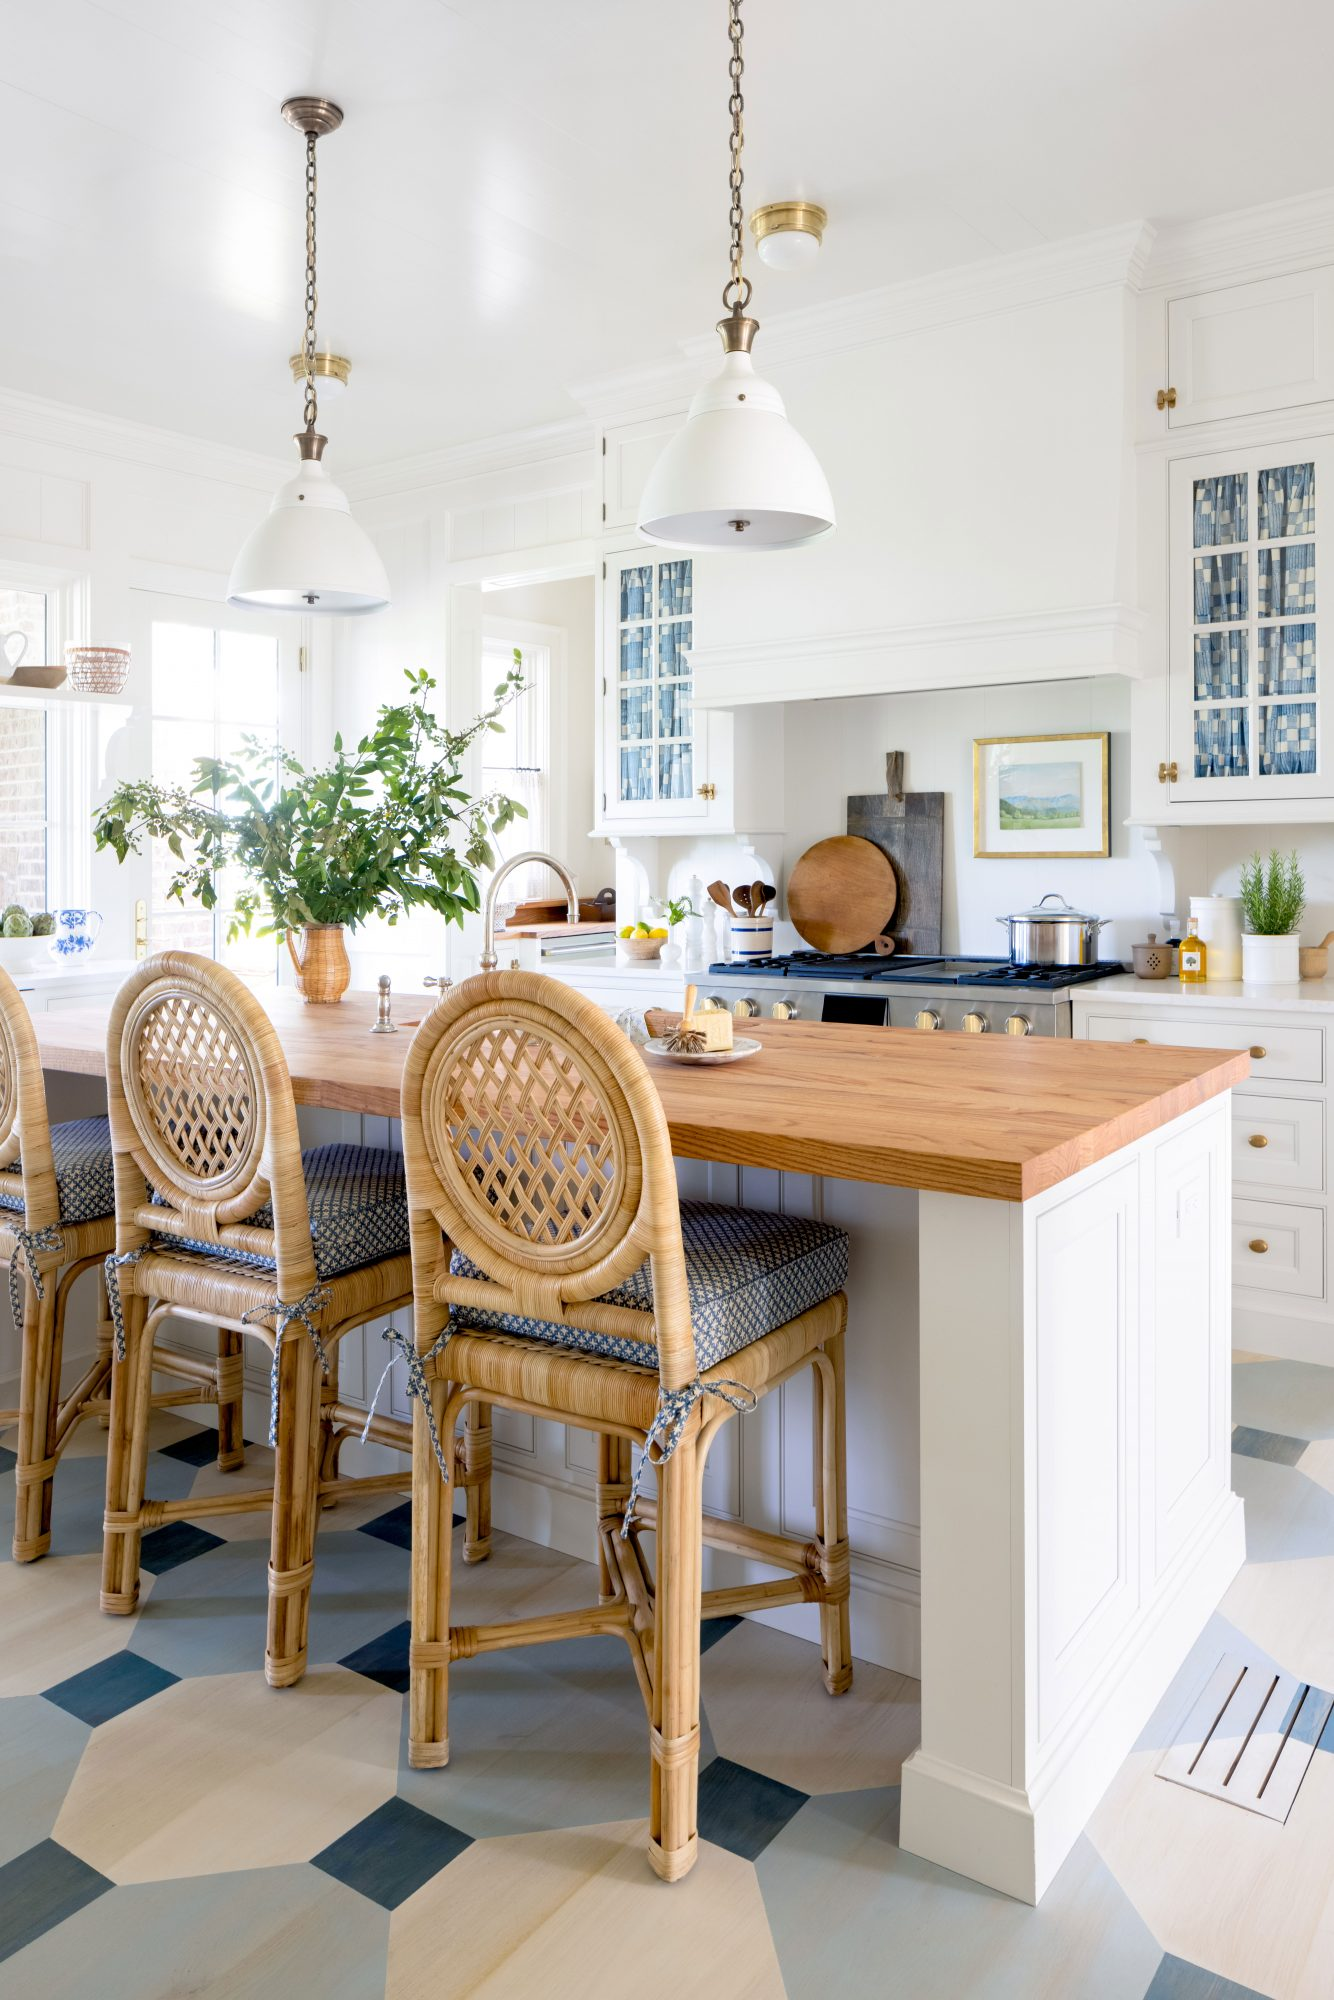 2021 Idea House Kitchen with Painted Floors